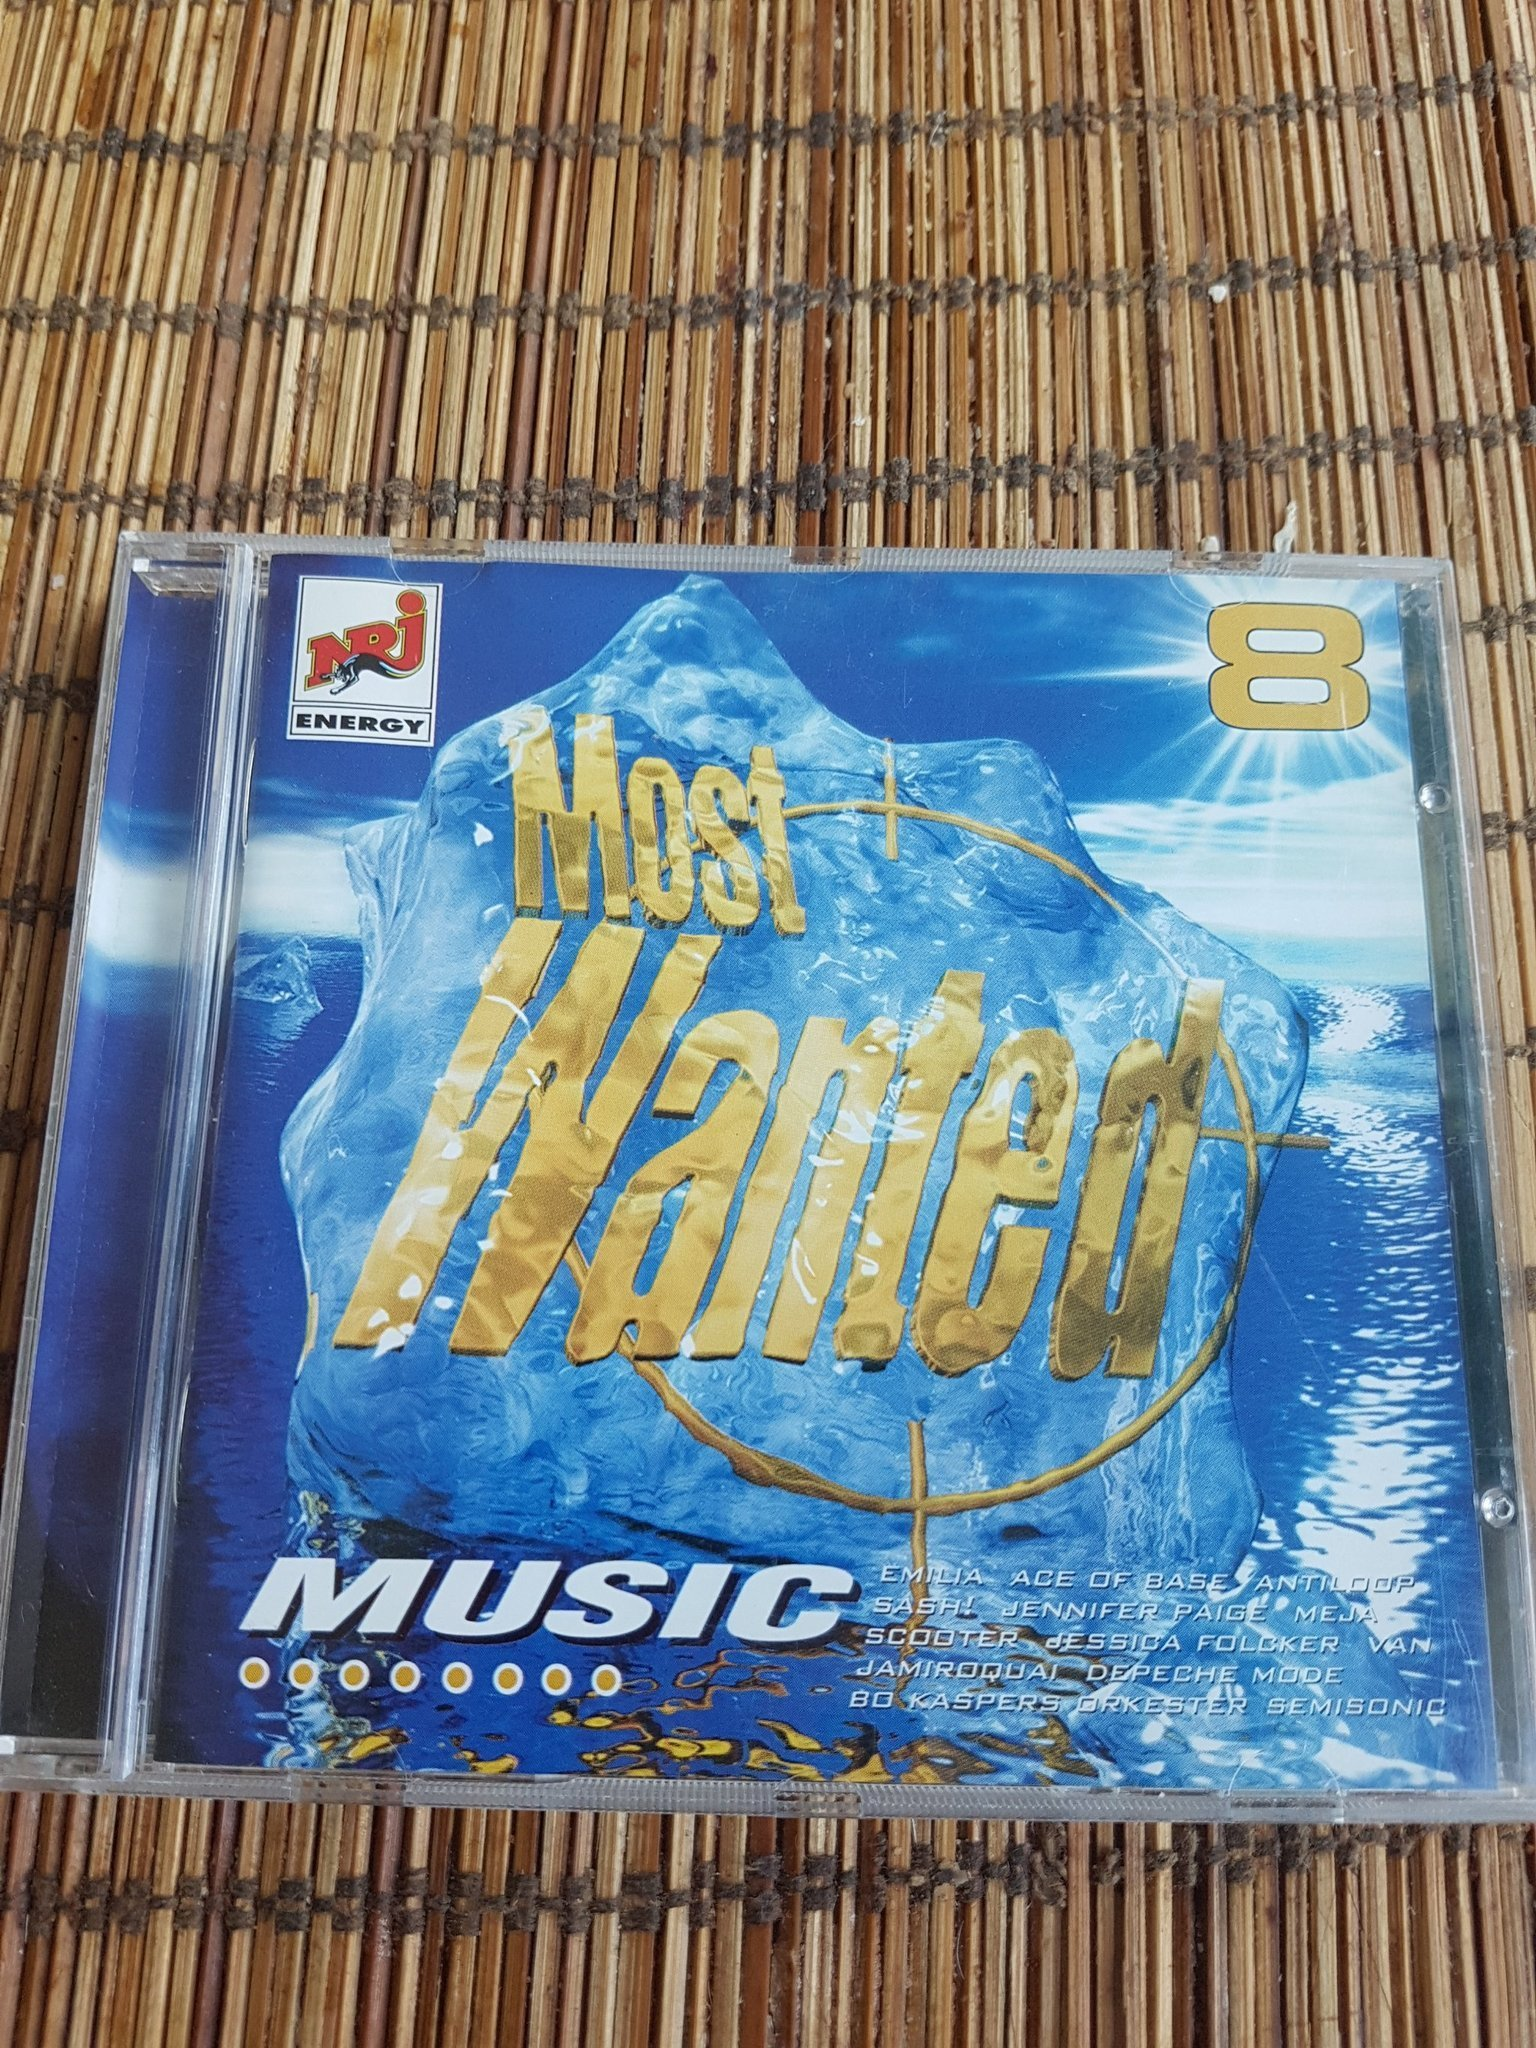 Cd Most wanted music 8